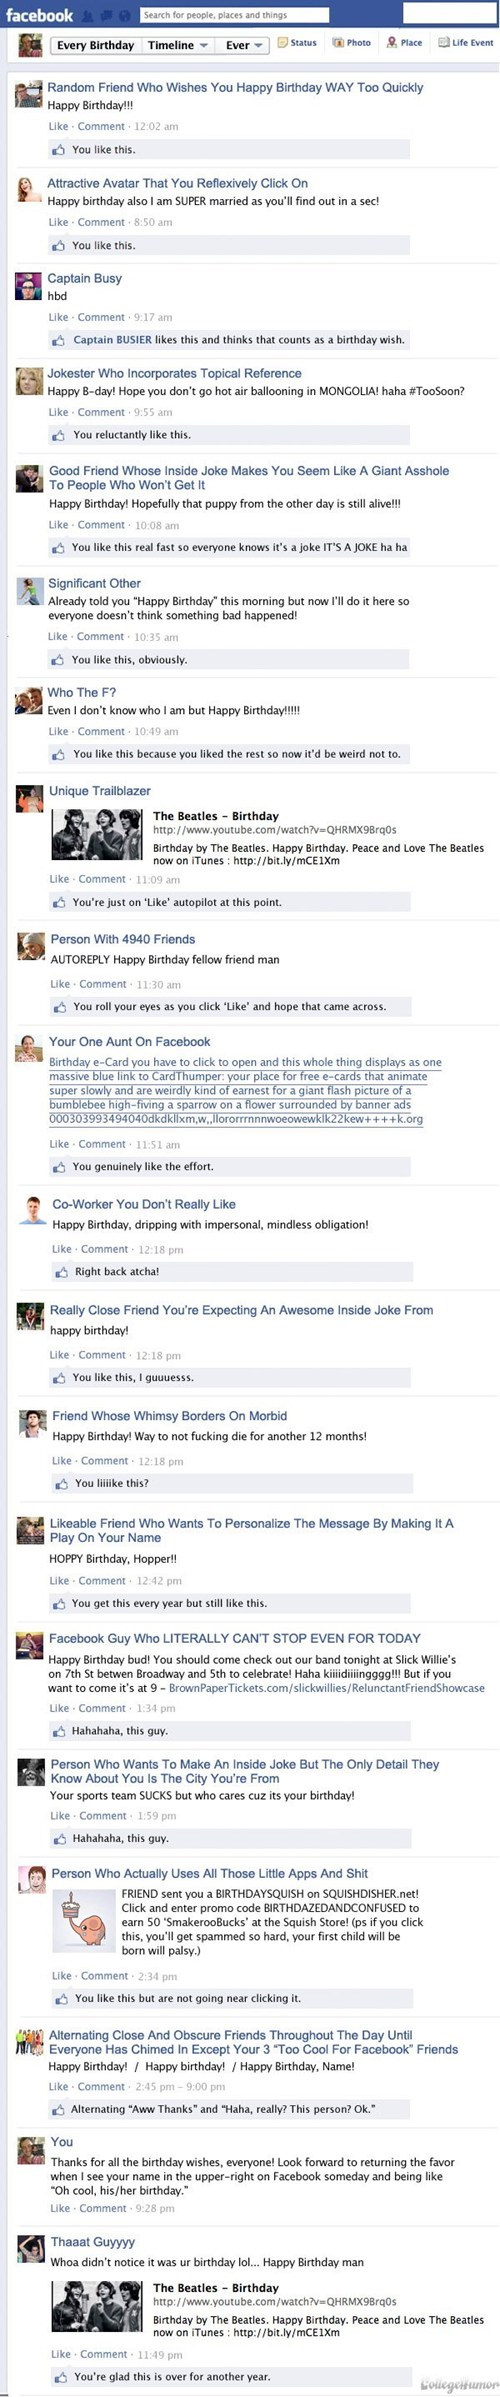 birthdays,wishing happy birthday,college humor,happy birthday,failbook